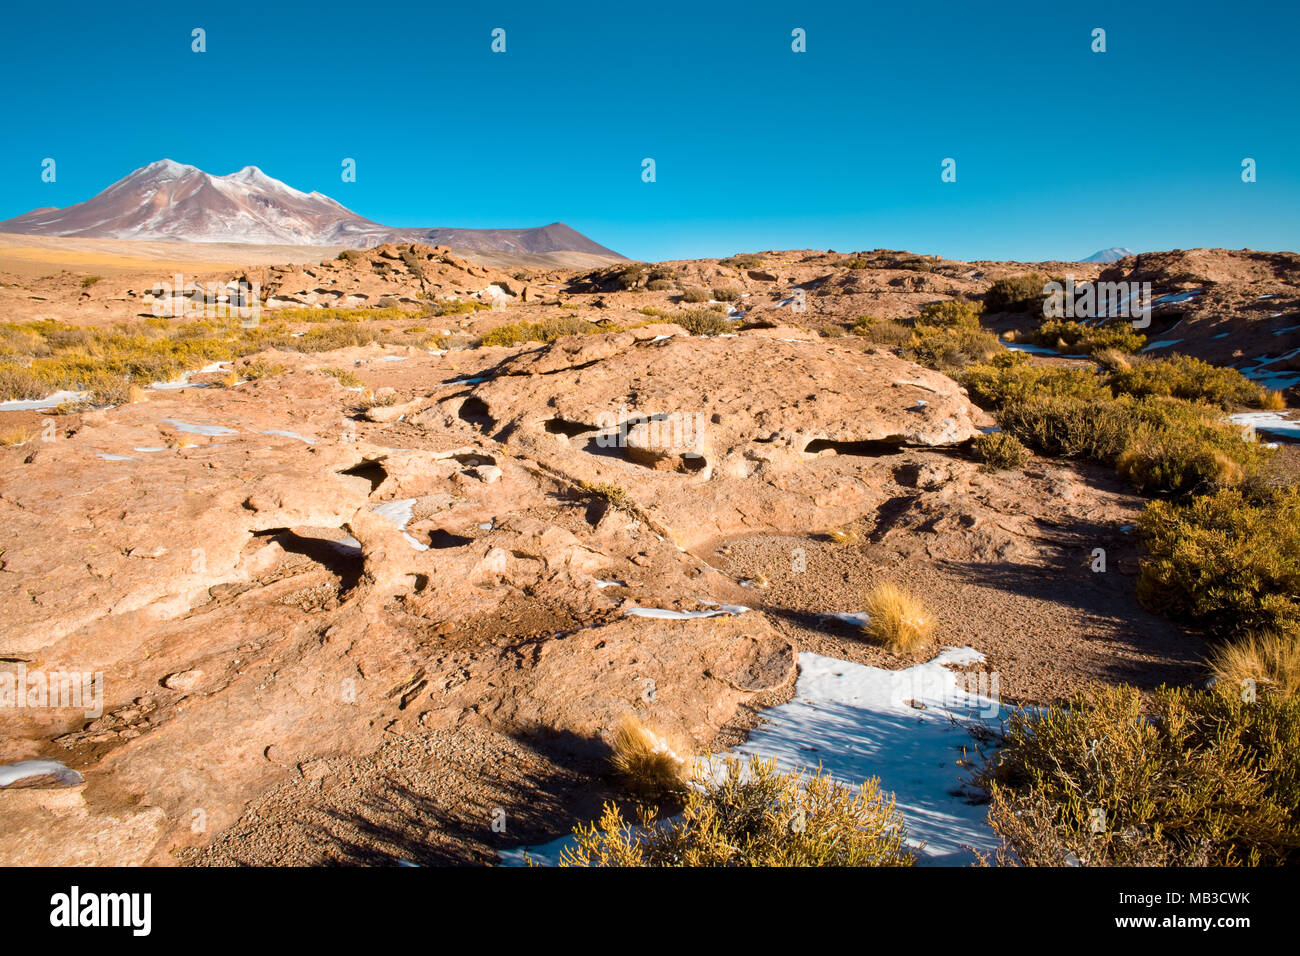 Rock formations of dry lava, with Cerro Miniques (Miniques hill) in the background in the Altiplano (high Andean Plateau), Los Flamencos National Rese - Stock Image